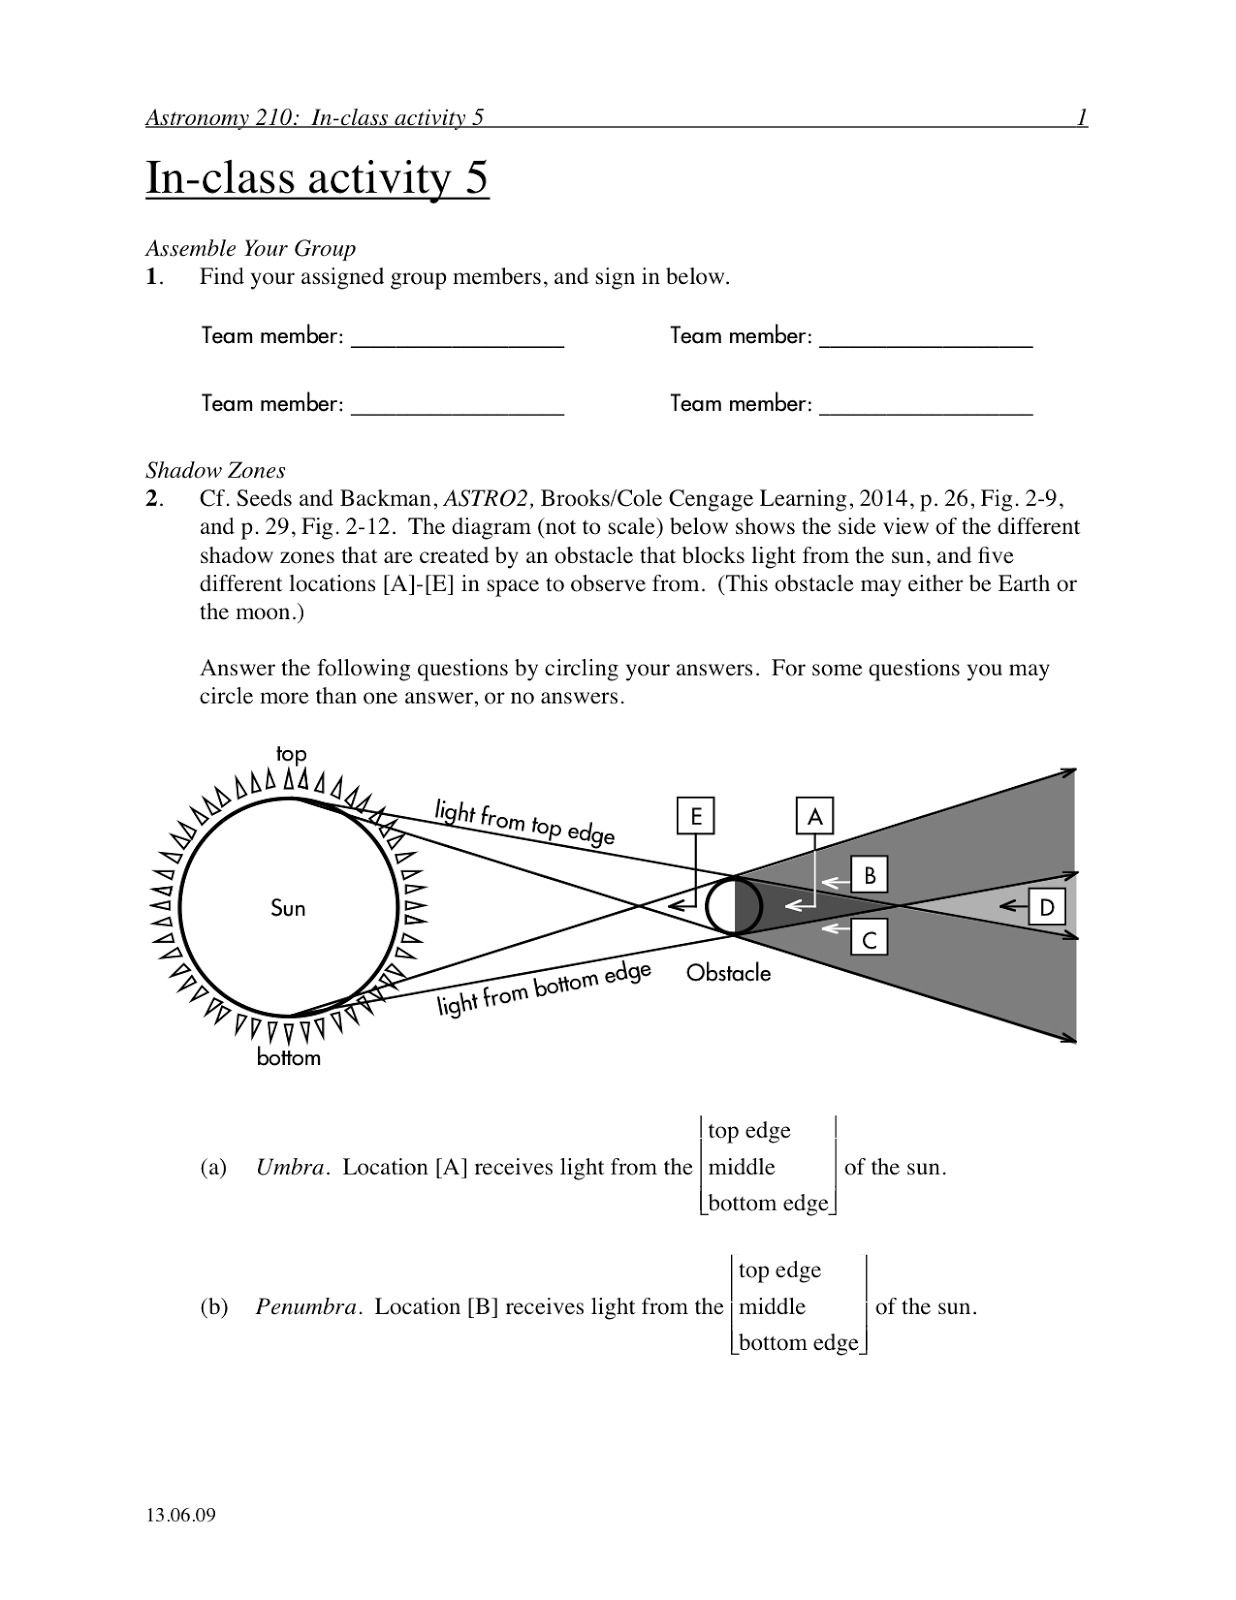 Momentum Impulse And Momentum Change Worksheet Answers